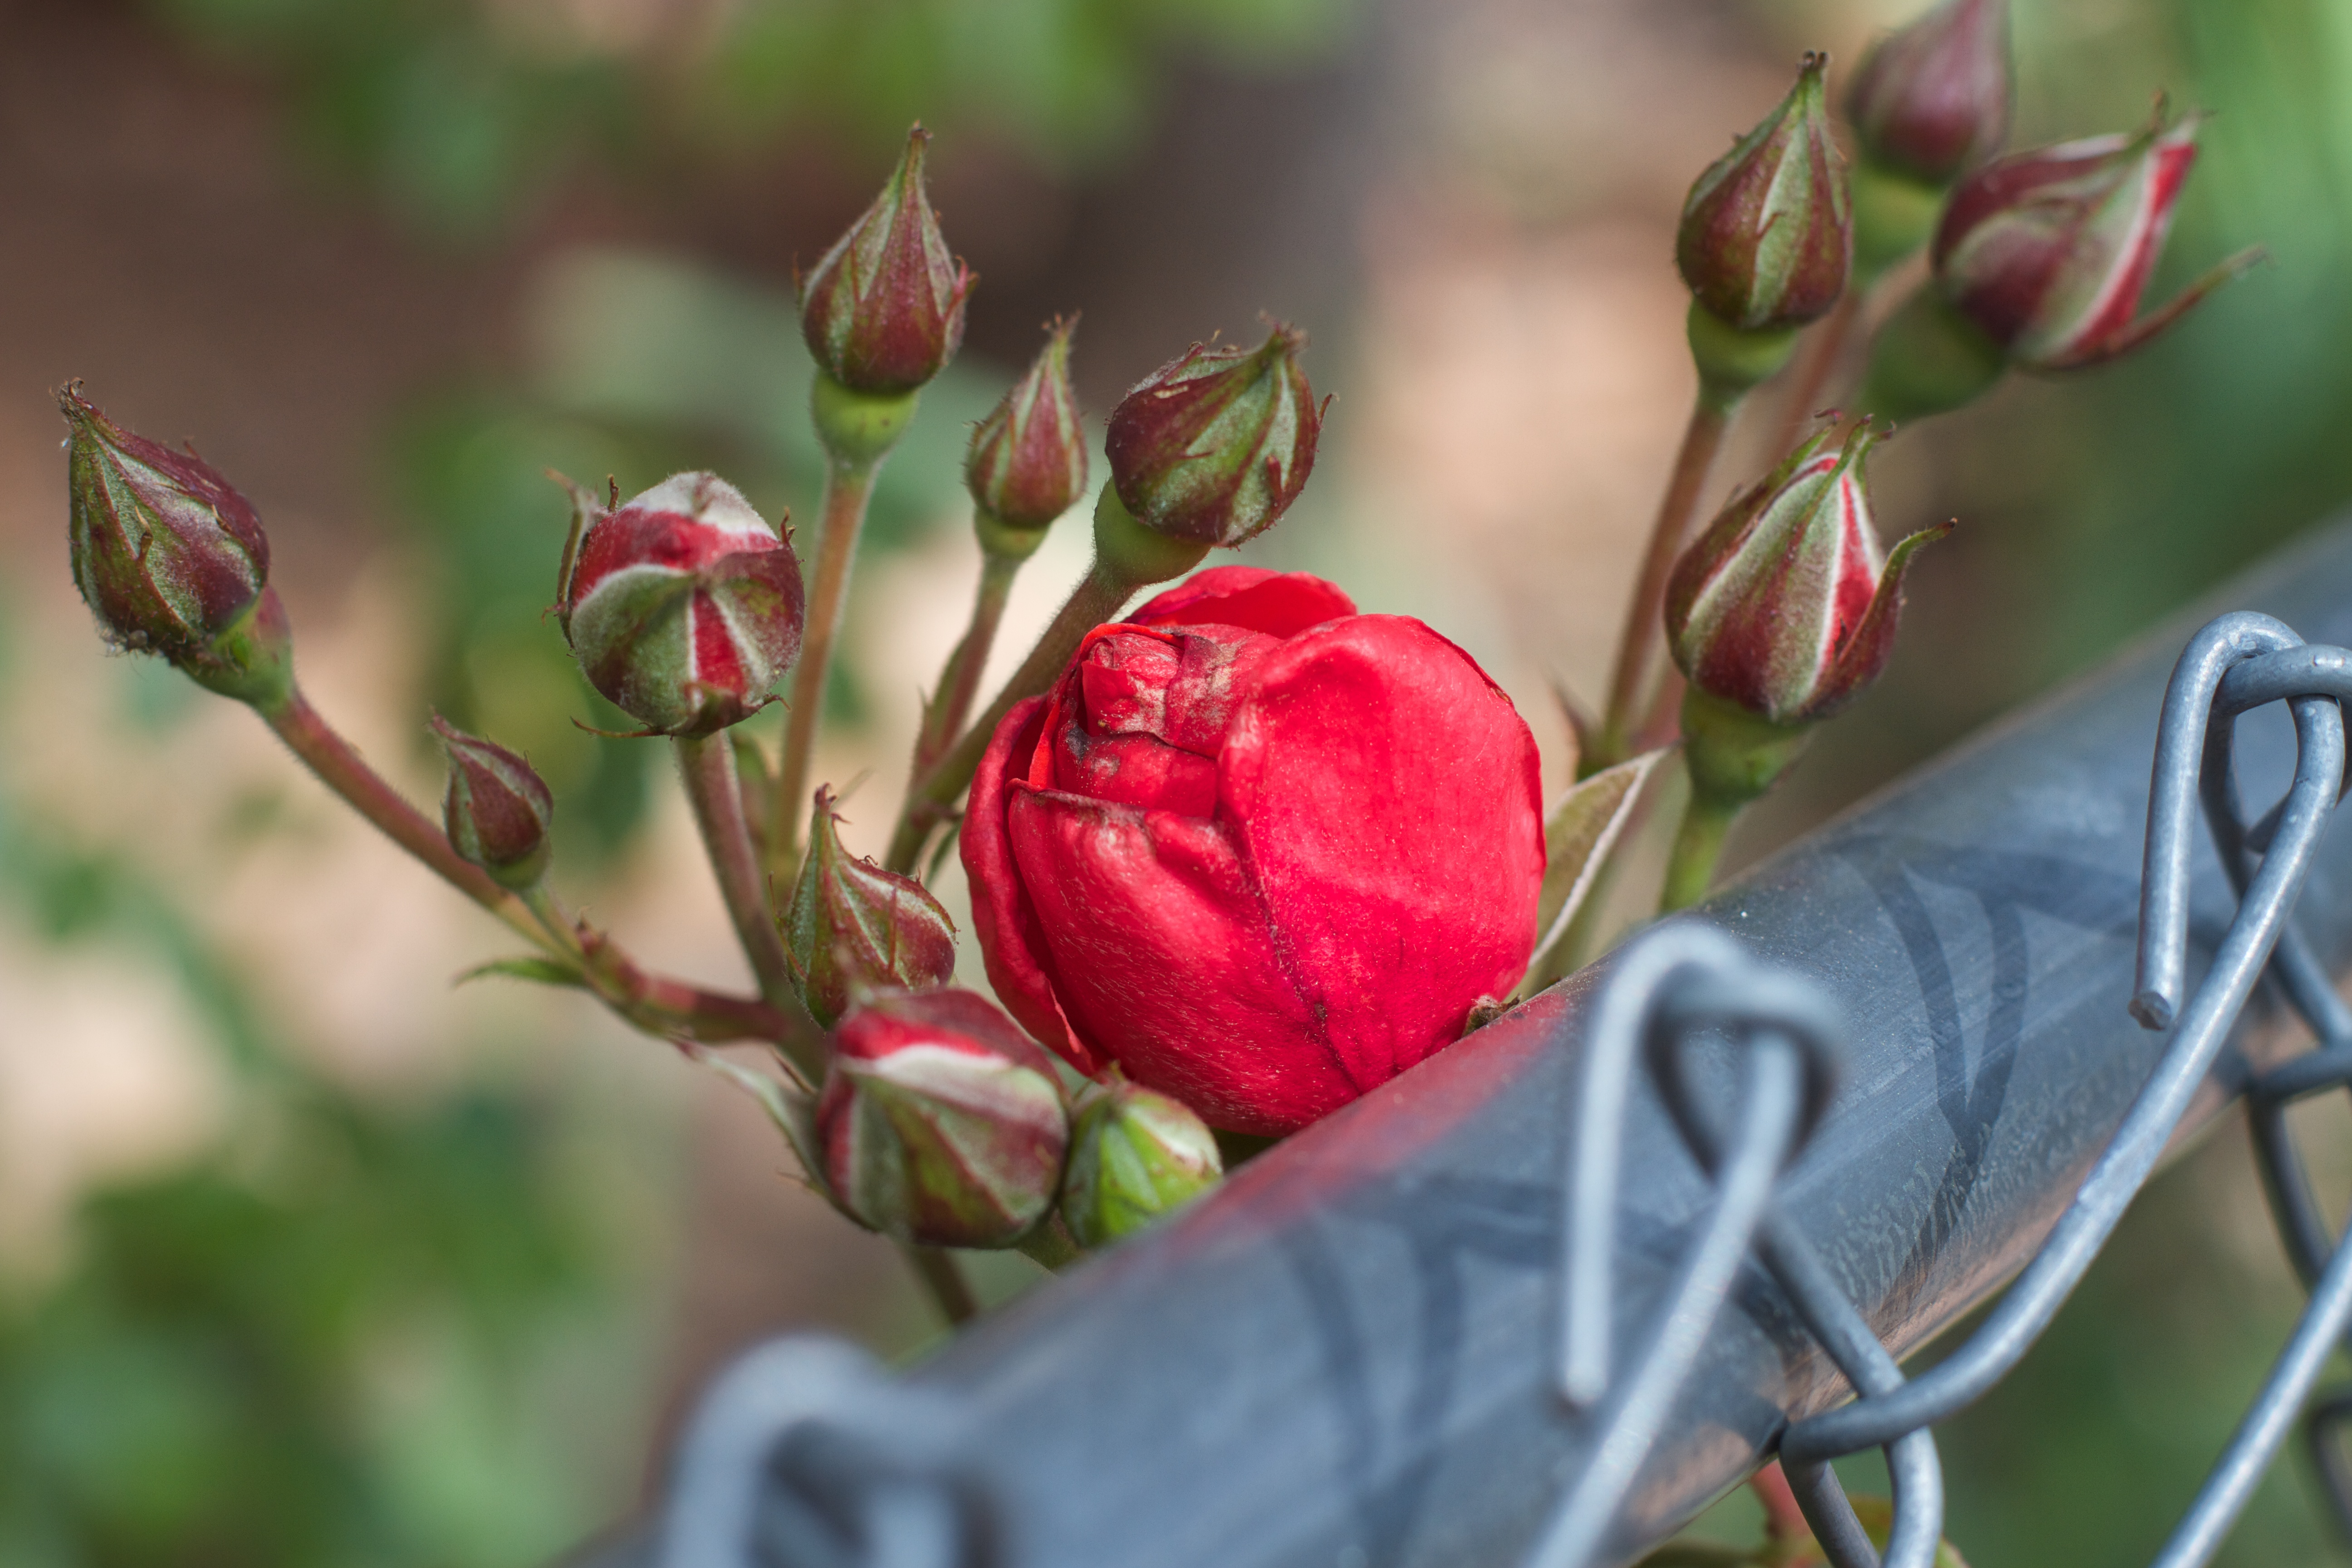 2015/365/144 I'm On the Fence, Too, 2015365, Fence, Flower, Outdoor, HQ Photo